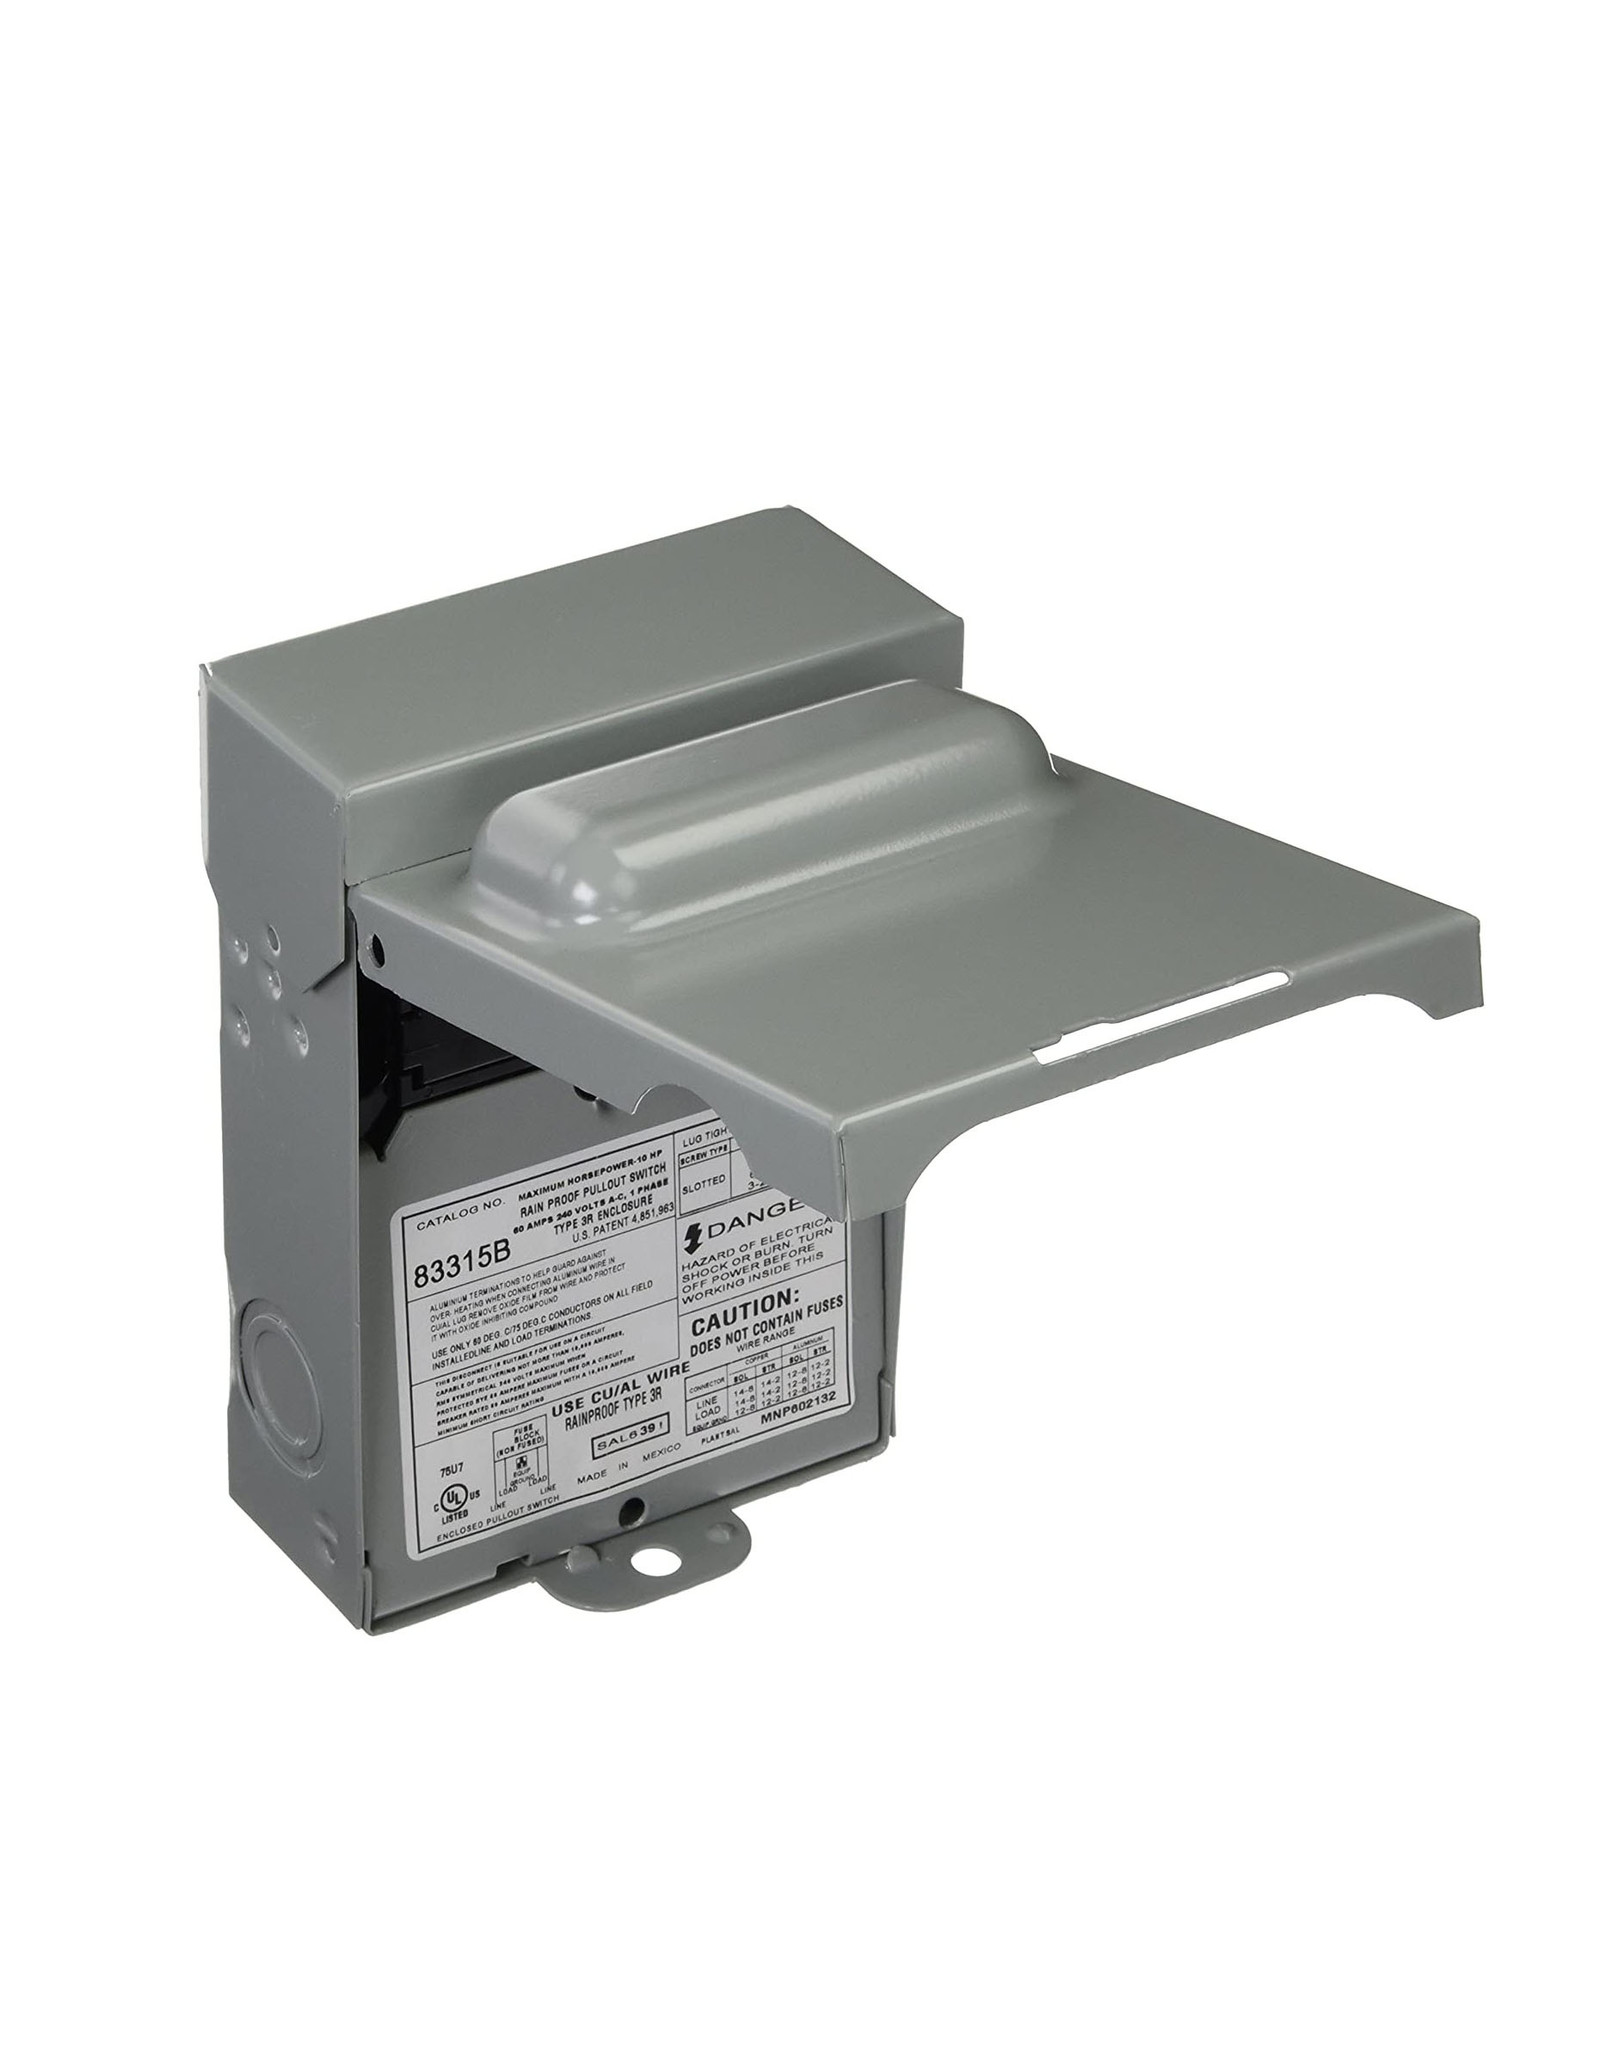 Non-fused Disconnect Switch 60A